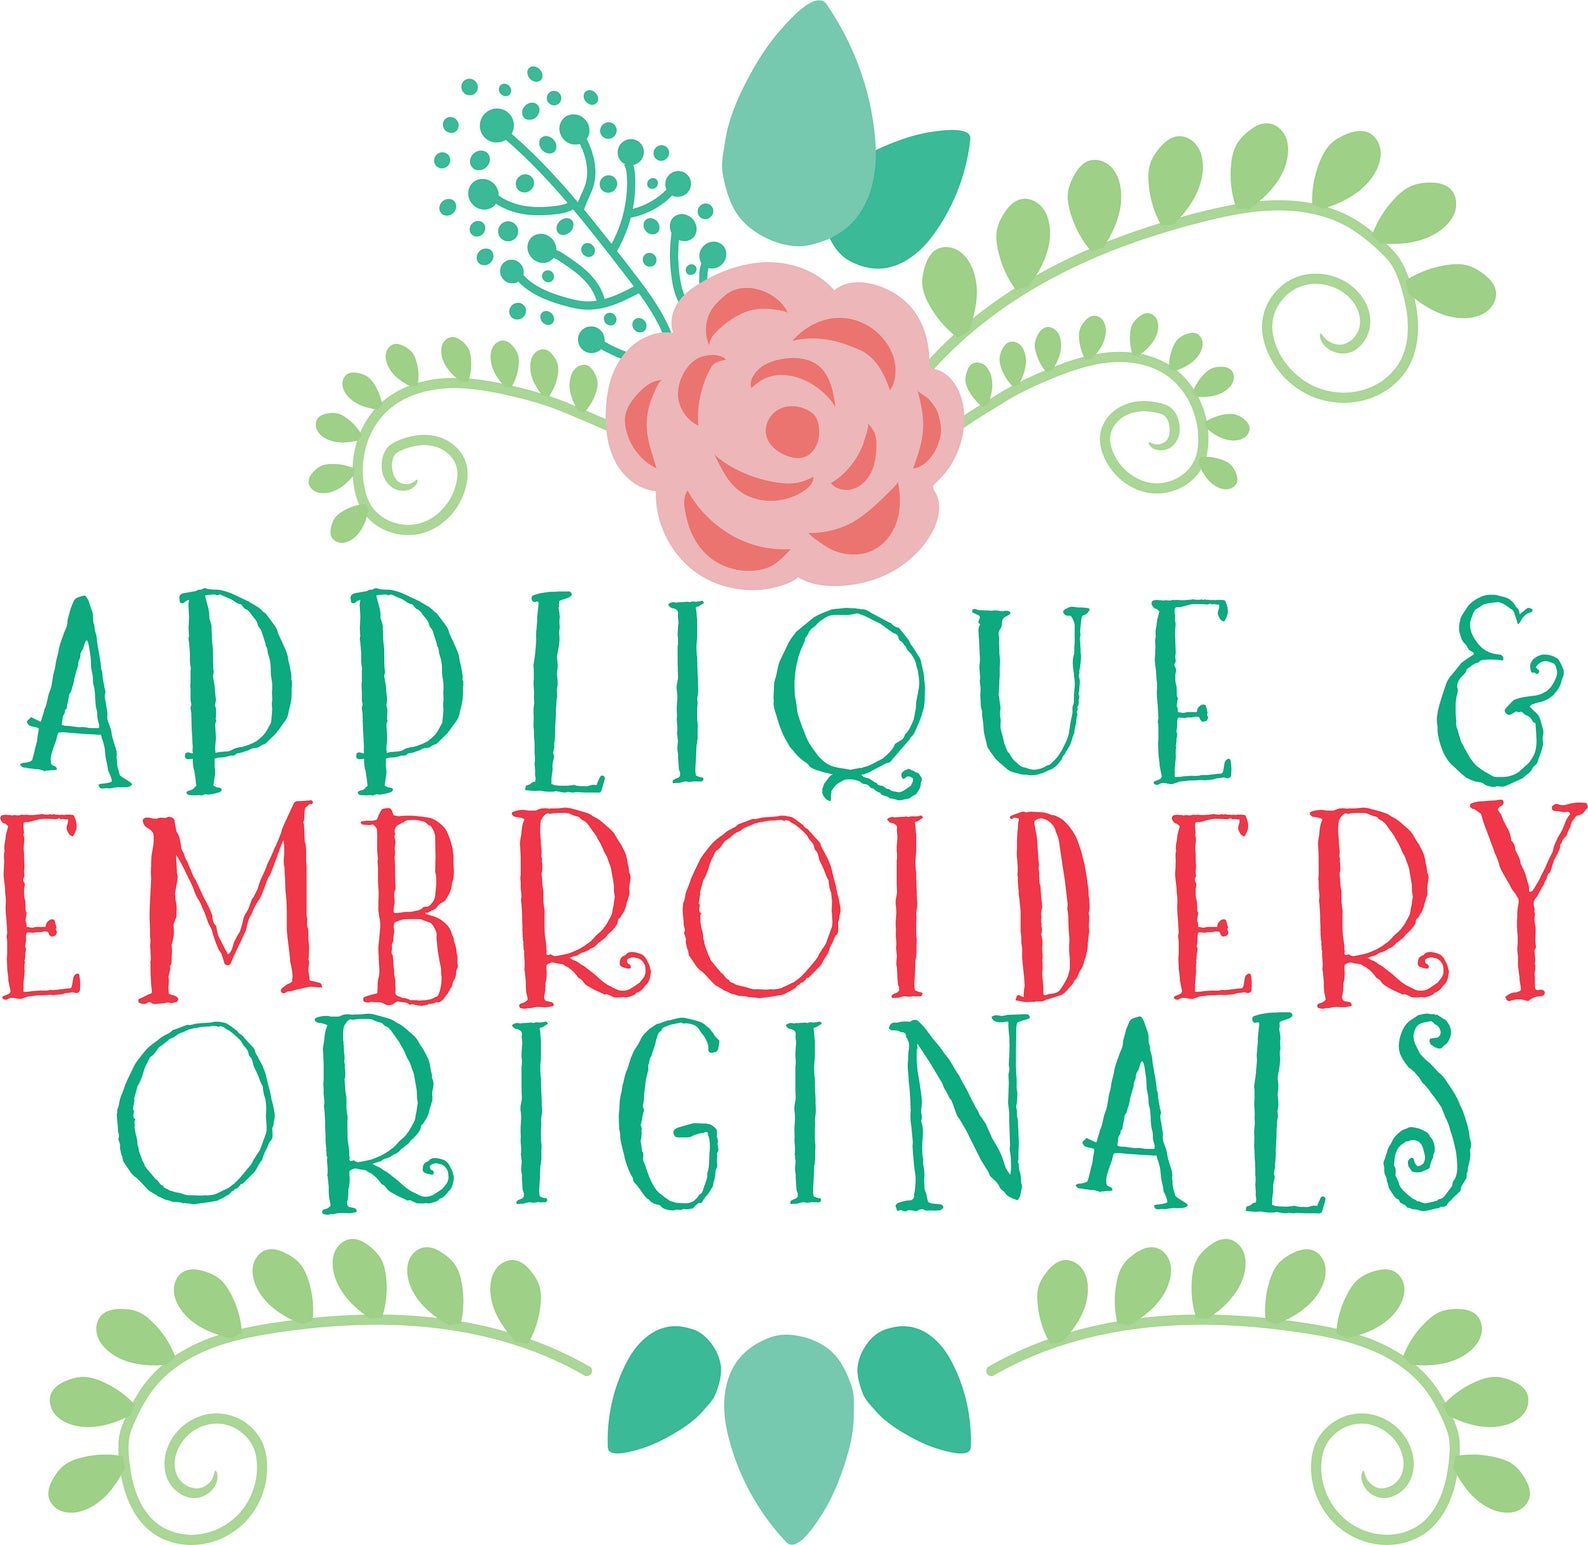 Patterns For Embroidery Machine Applique And Embroidery Originals Digital Design Ps948 Ballet